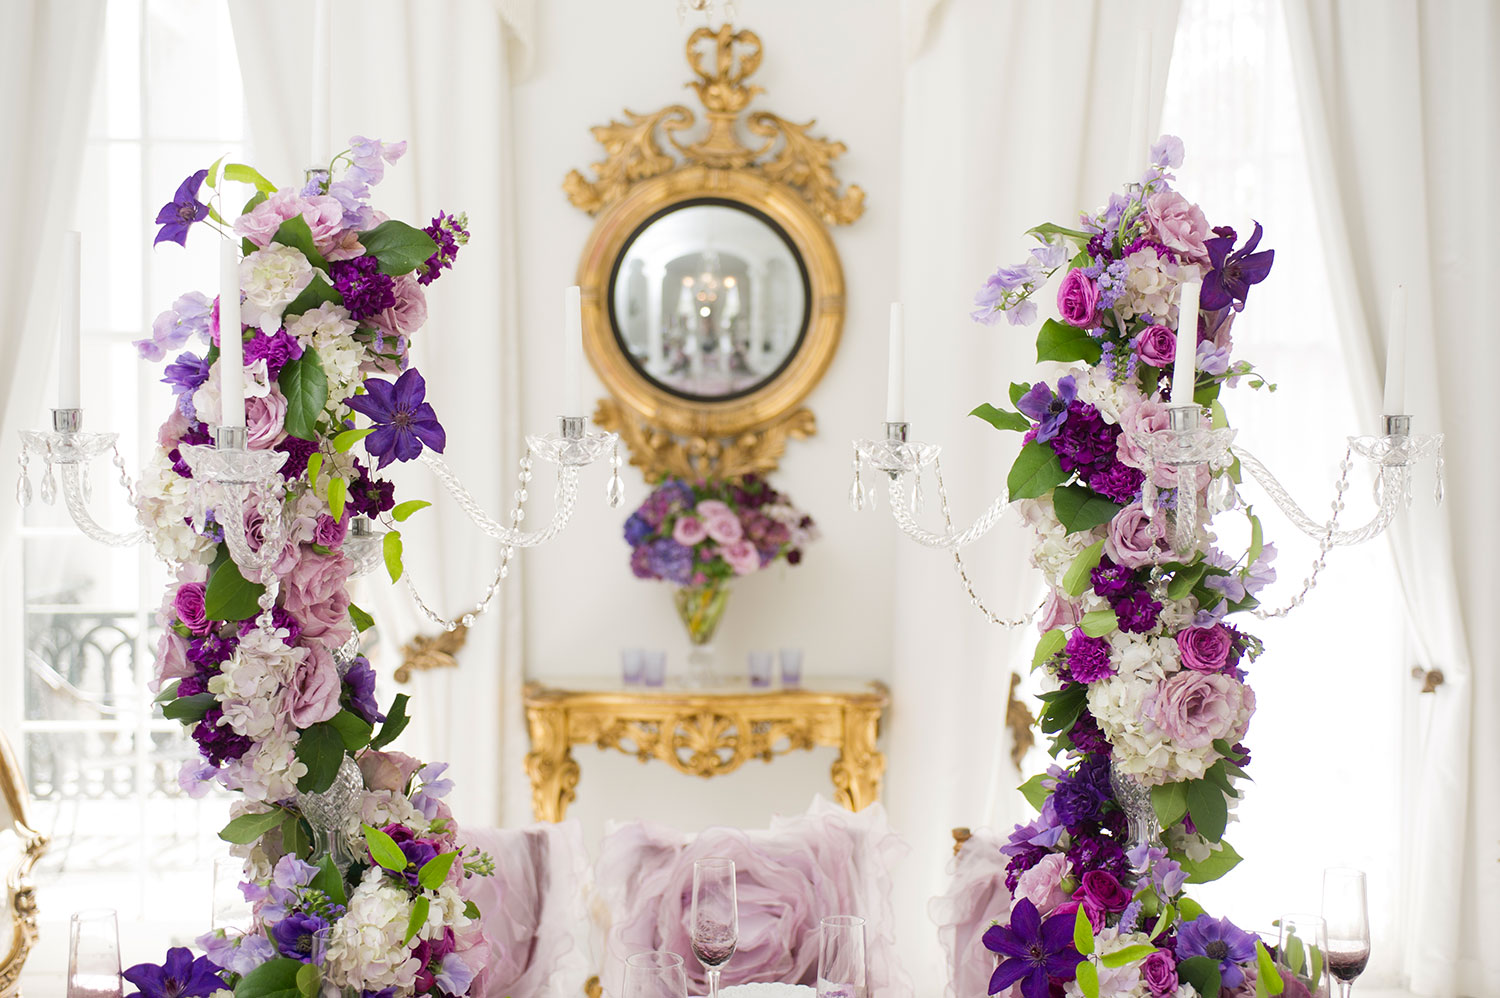 sapphireevents.com | Radiant Orchid Weddings | Sapphire Events | New Orleans Wedding Planner and Designer | Robin Nathan Photography | Nottoway Plantation Events